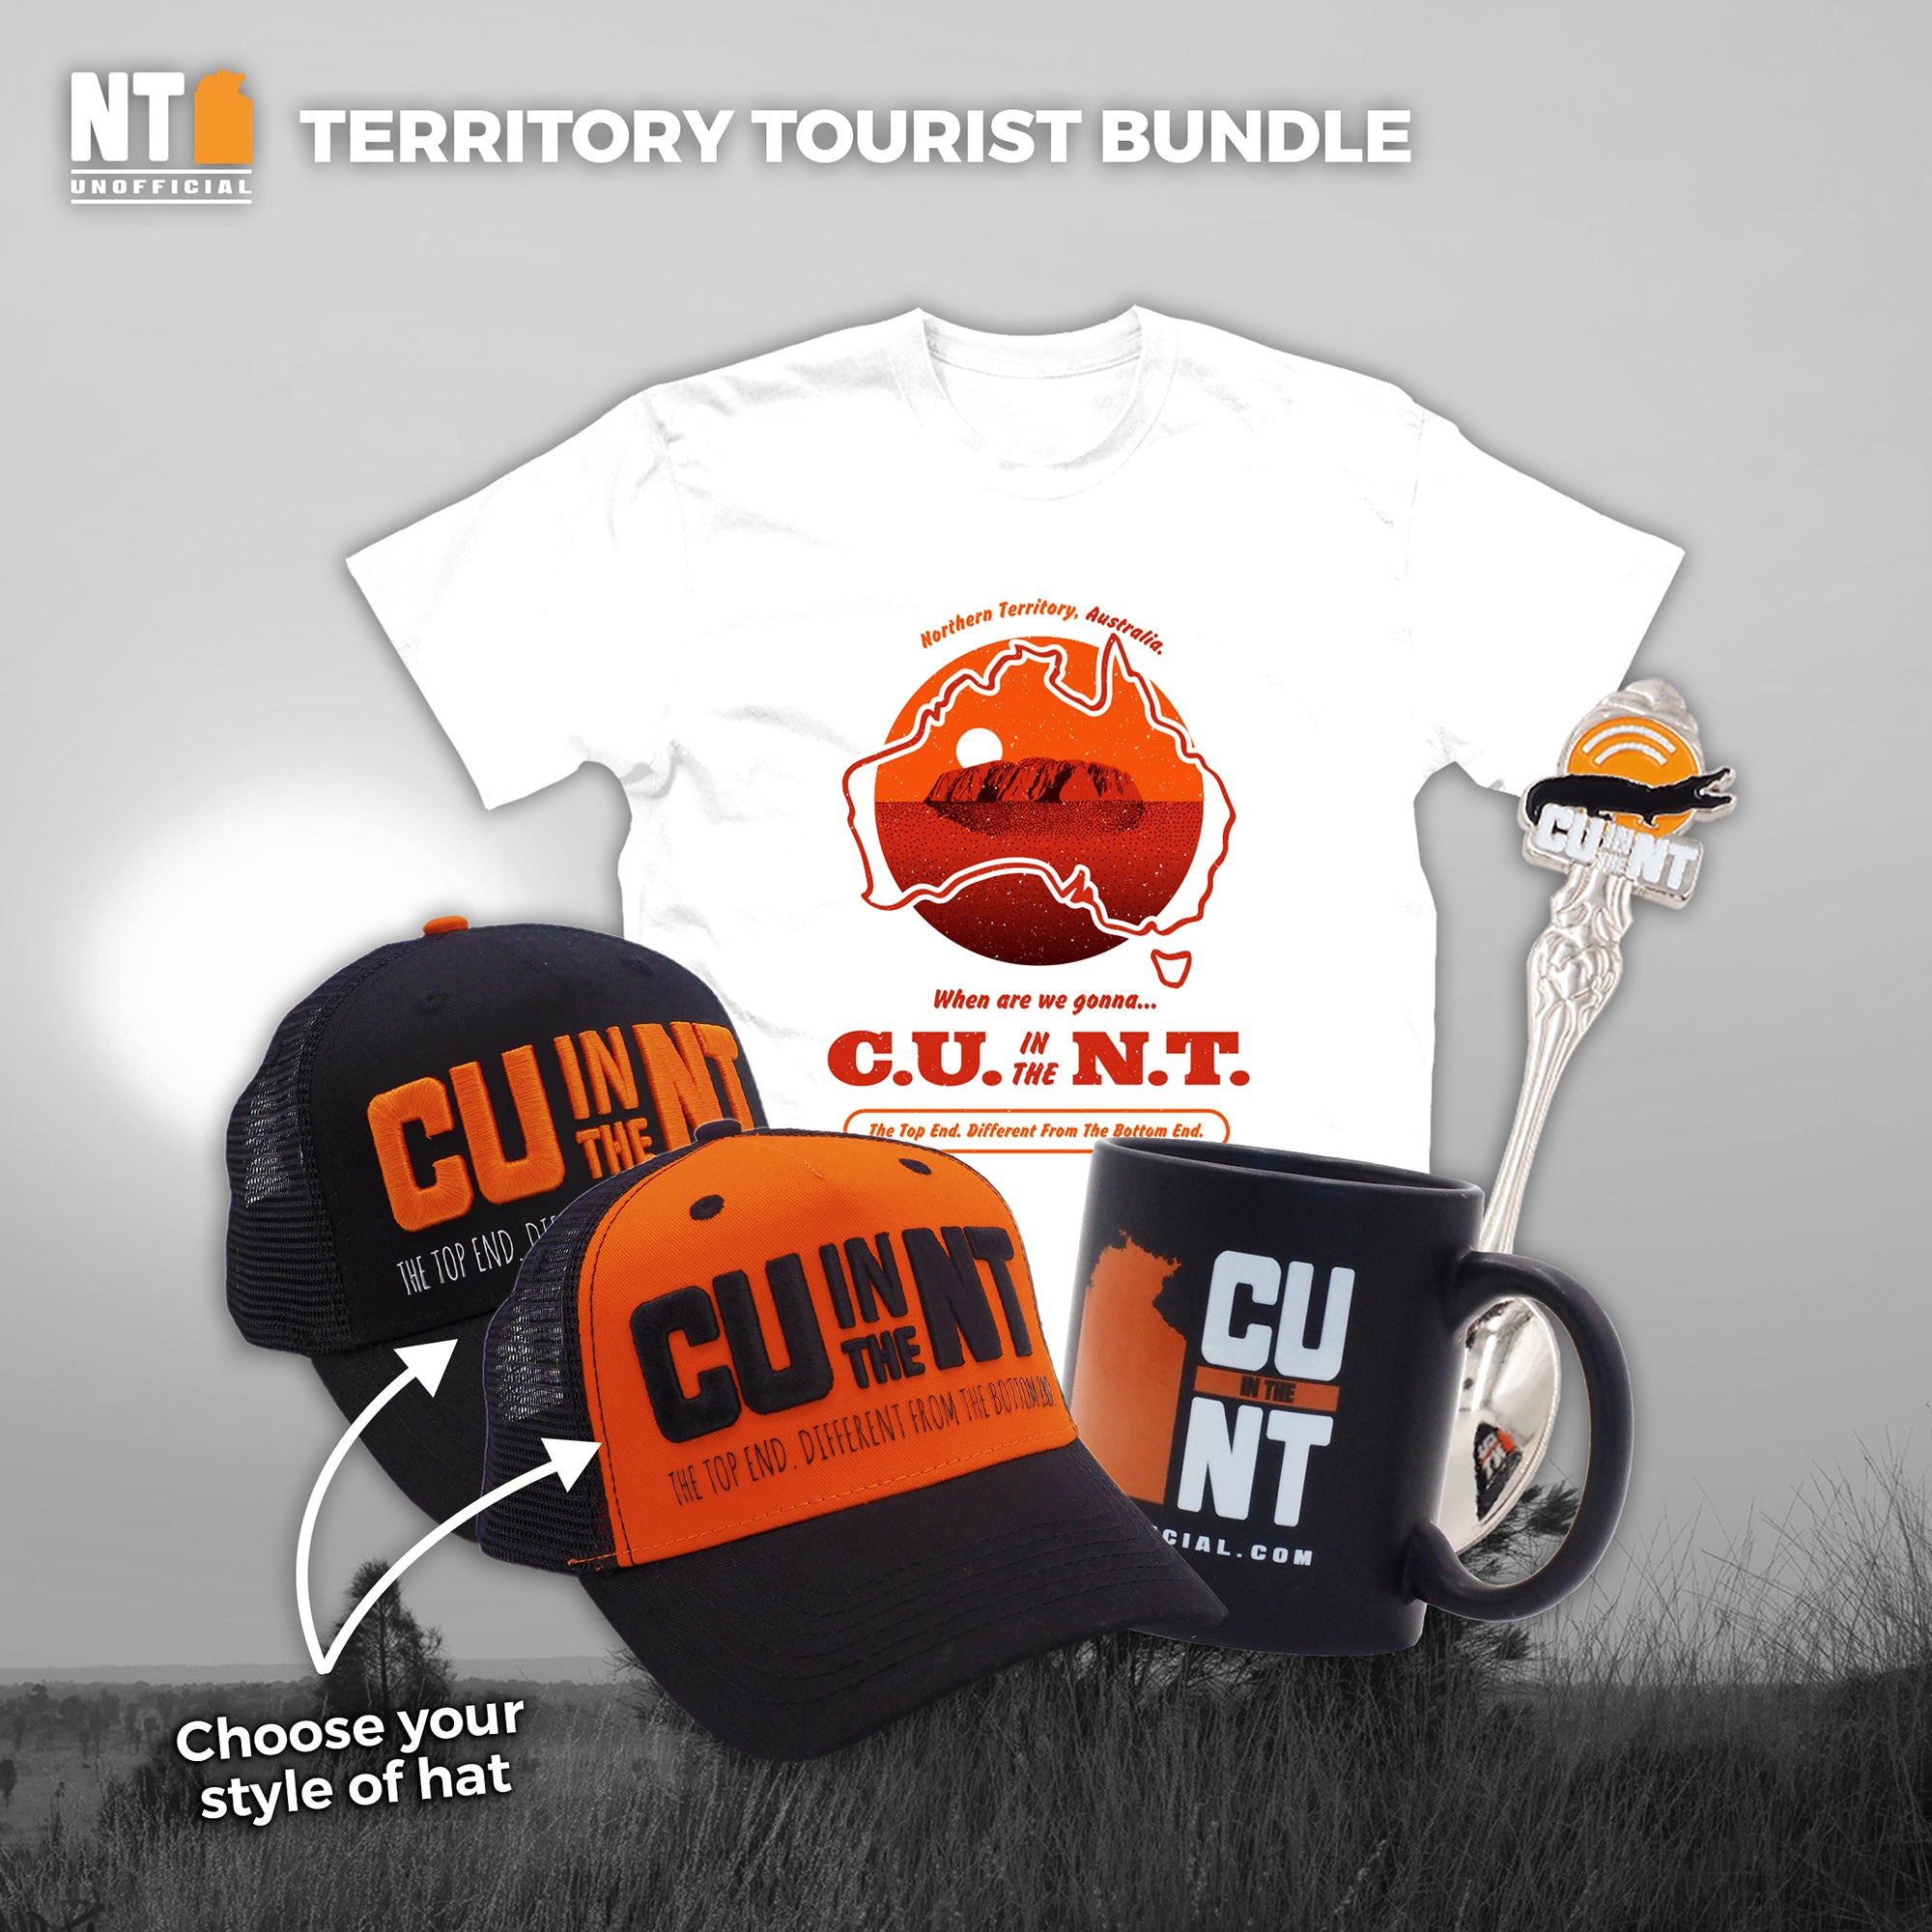 Territory Tourist Bundle